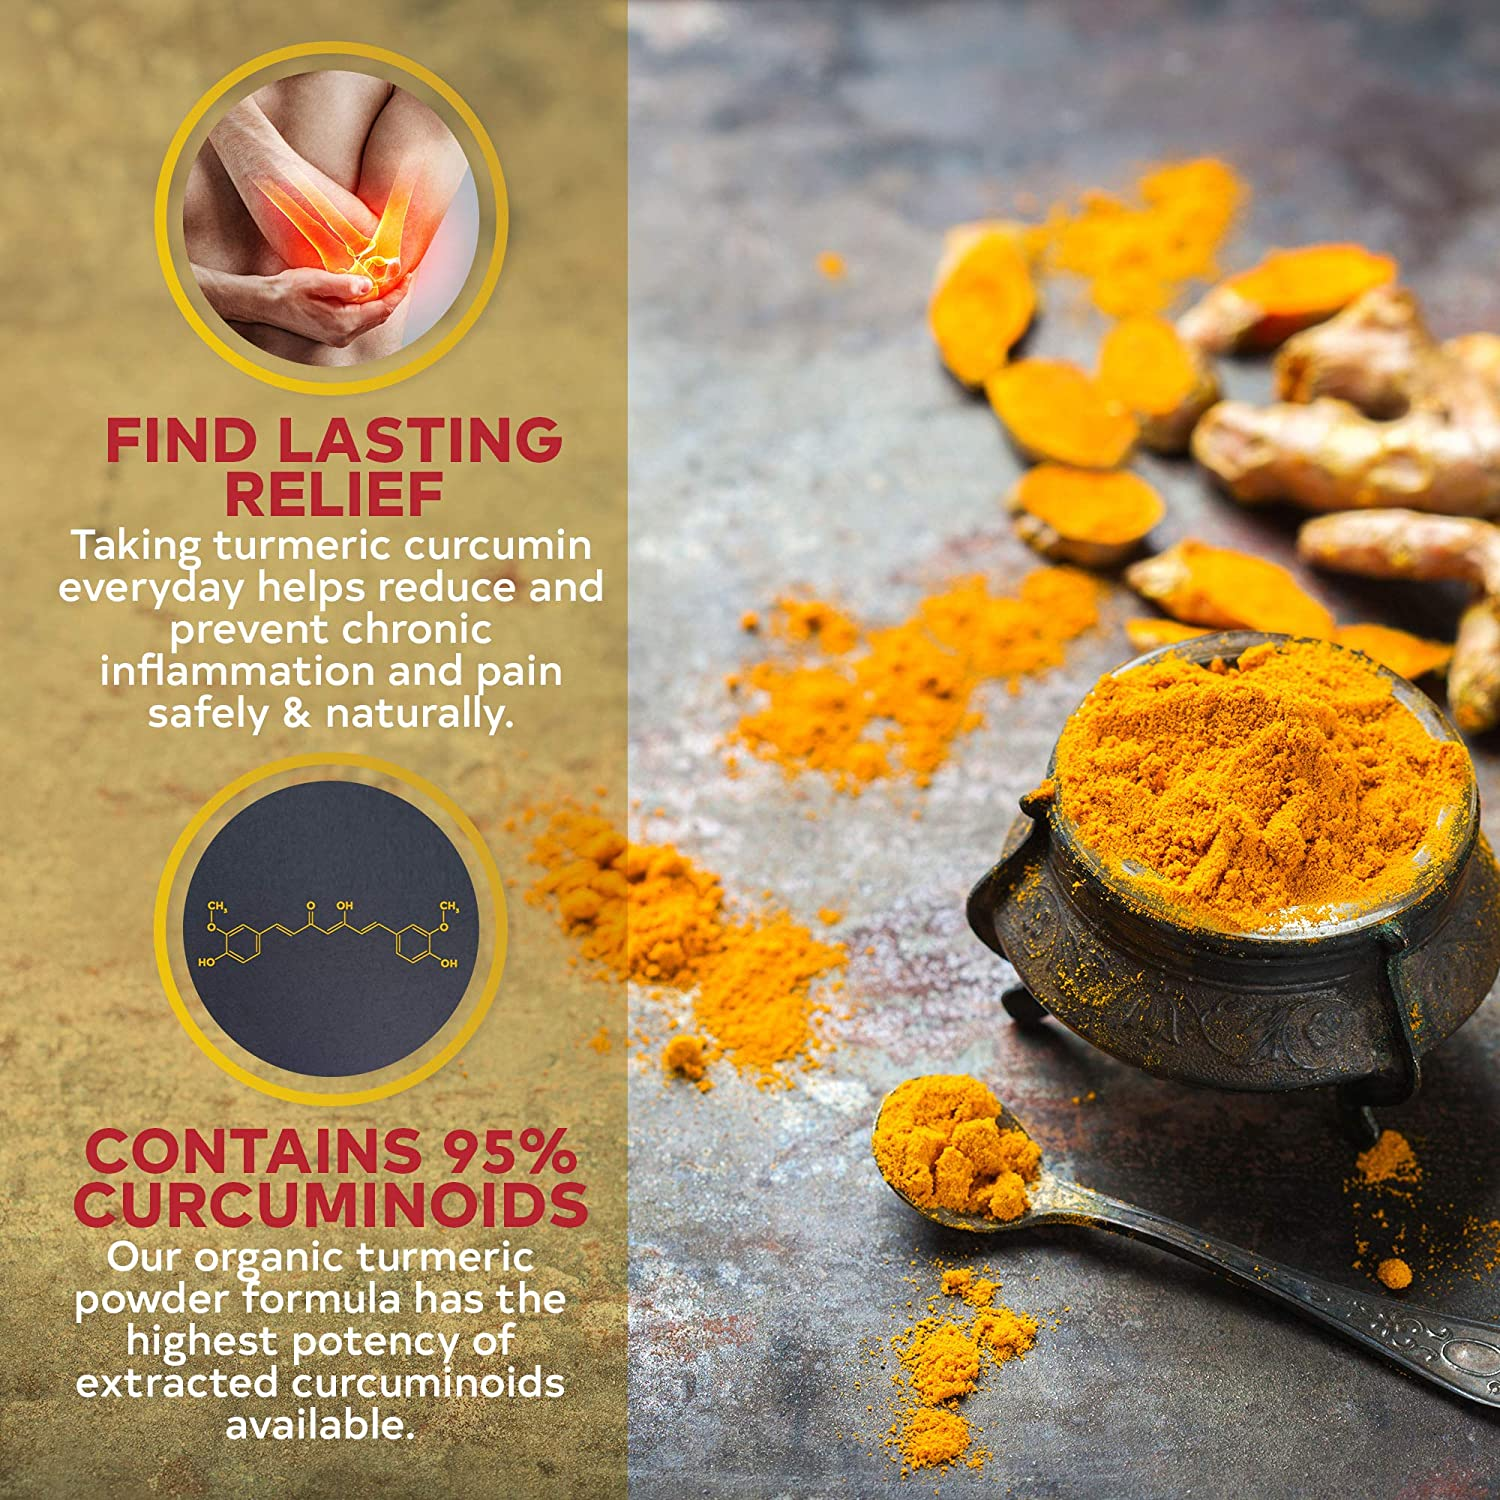 Organic Turmeric Curcumin with BioPerine - Potent Anti-Inflammatory - Contains 95% Curcuminoids and Black Pepper Extract for Fast Absorption - 1500 Milligram Vegan Capsules - 40 Day Supply: Health & Personal Care